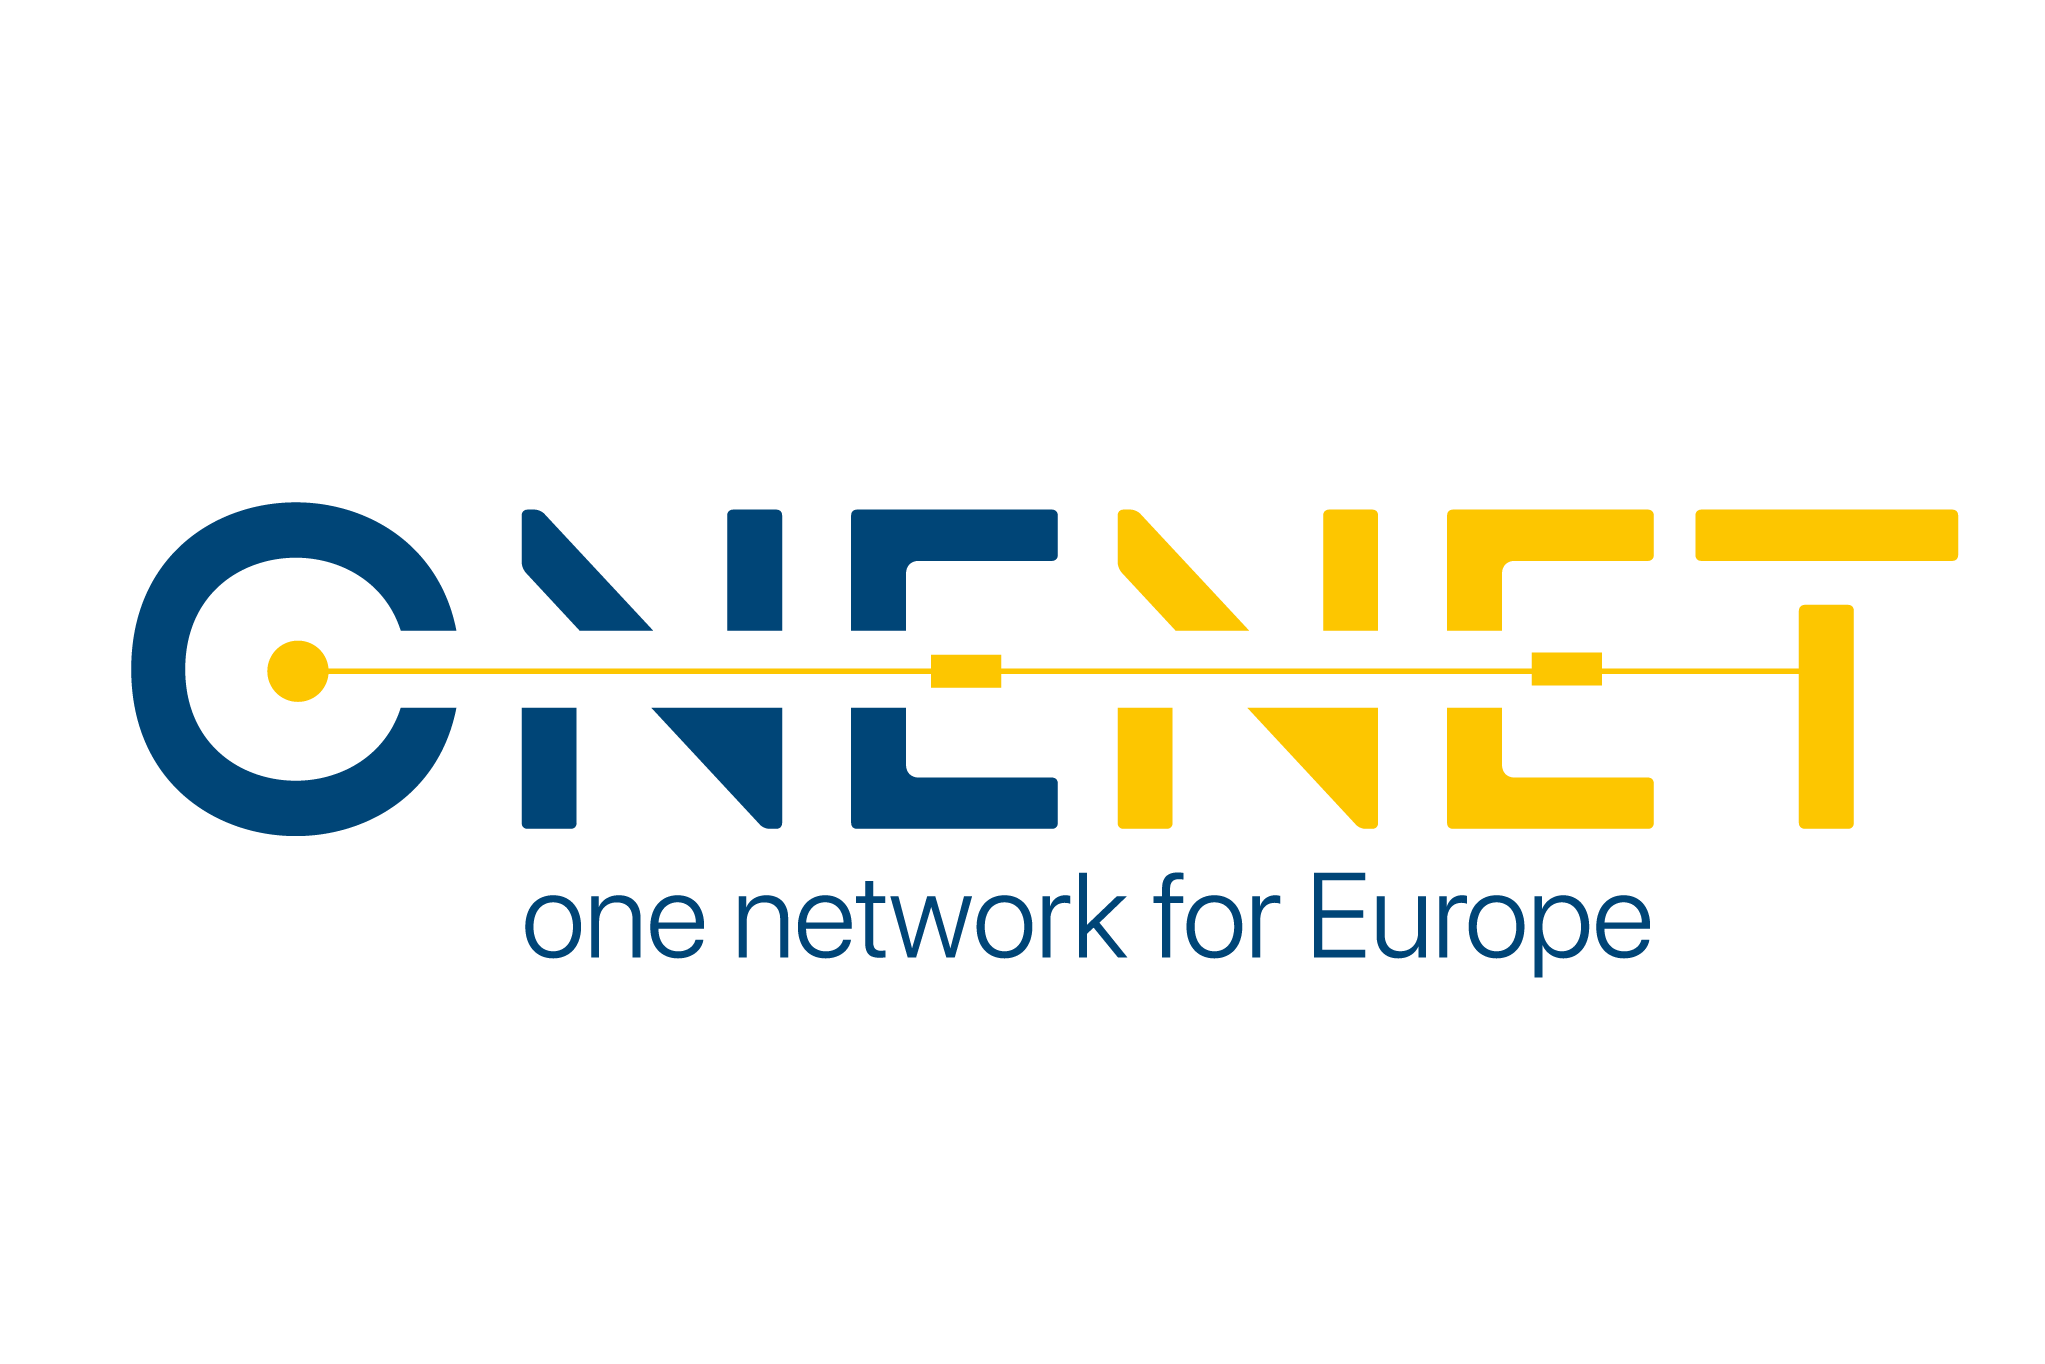 OneNet Project – One Network for Europe